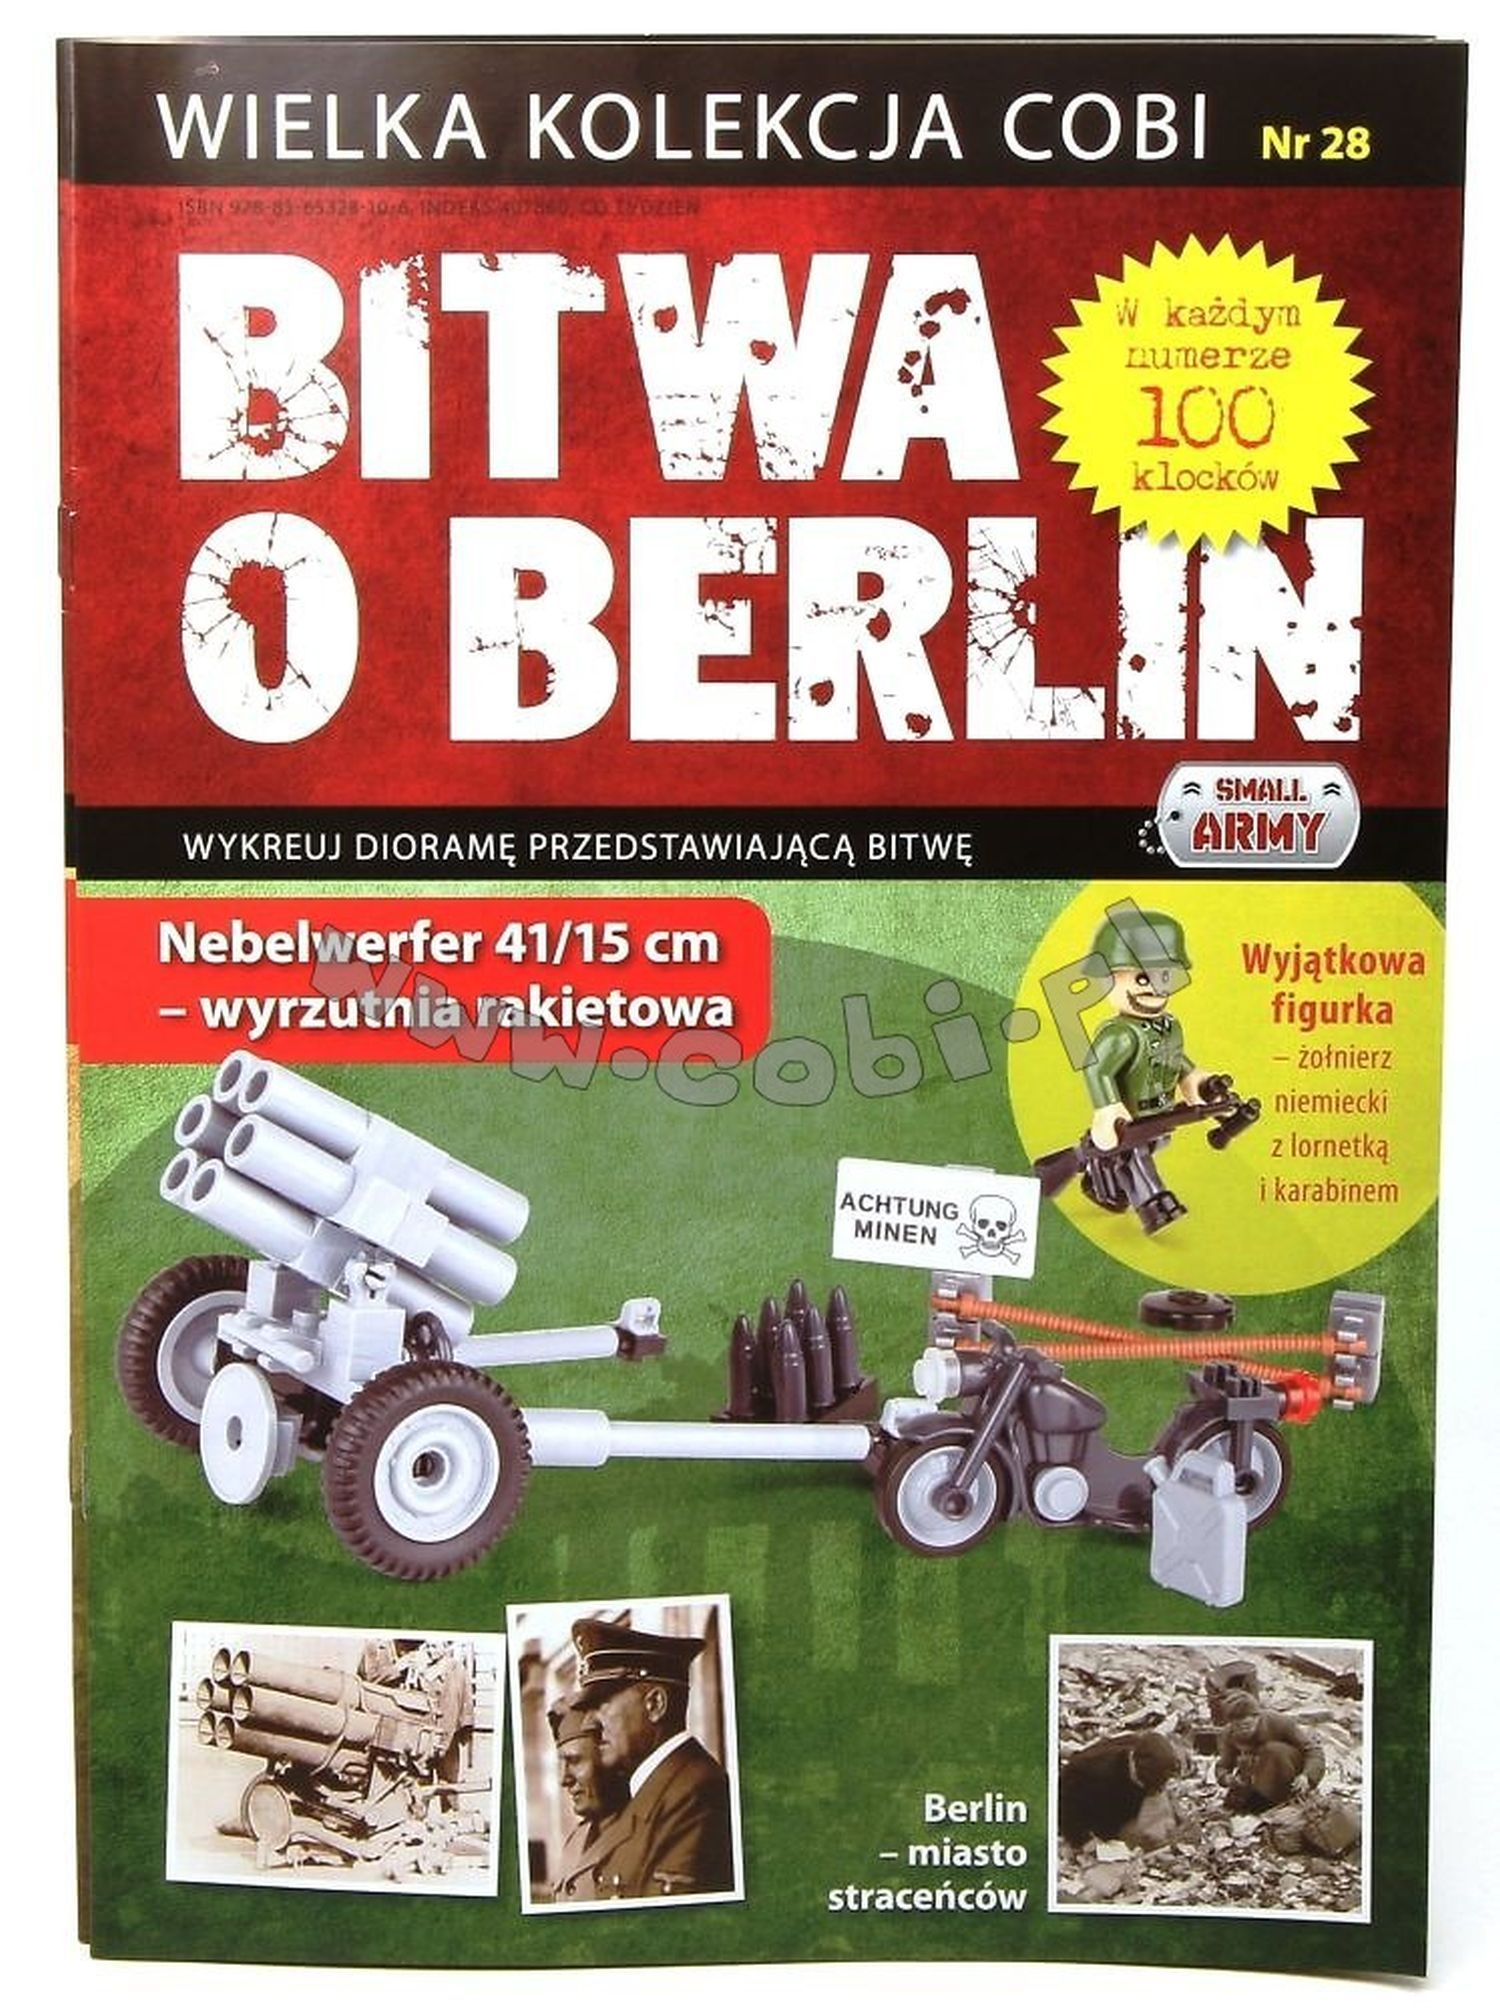 555528_Cobi_2.WK_Sammelheft_28_Nebelwerfer_www-super-bricks.de_1_Cobi_2.WK_www-super-bricks.de